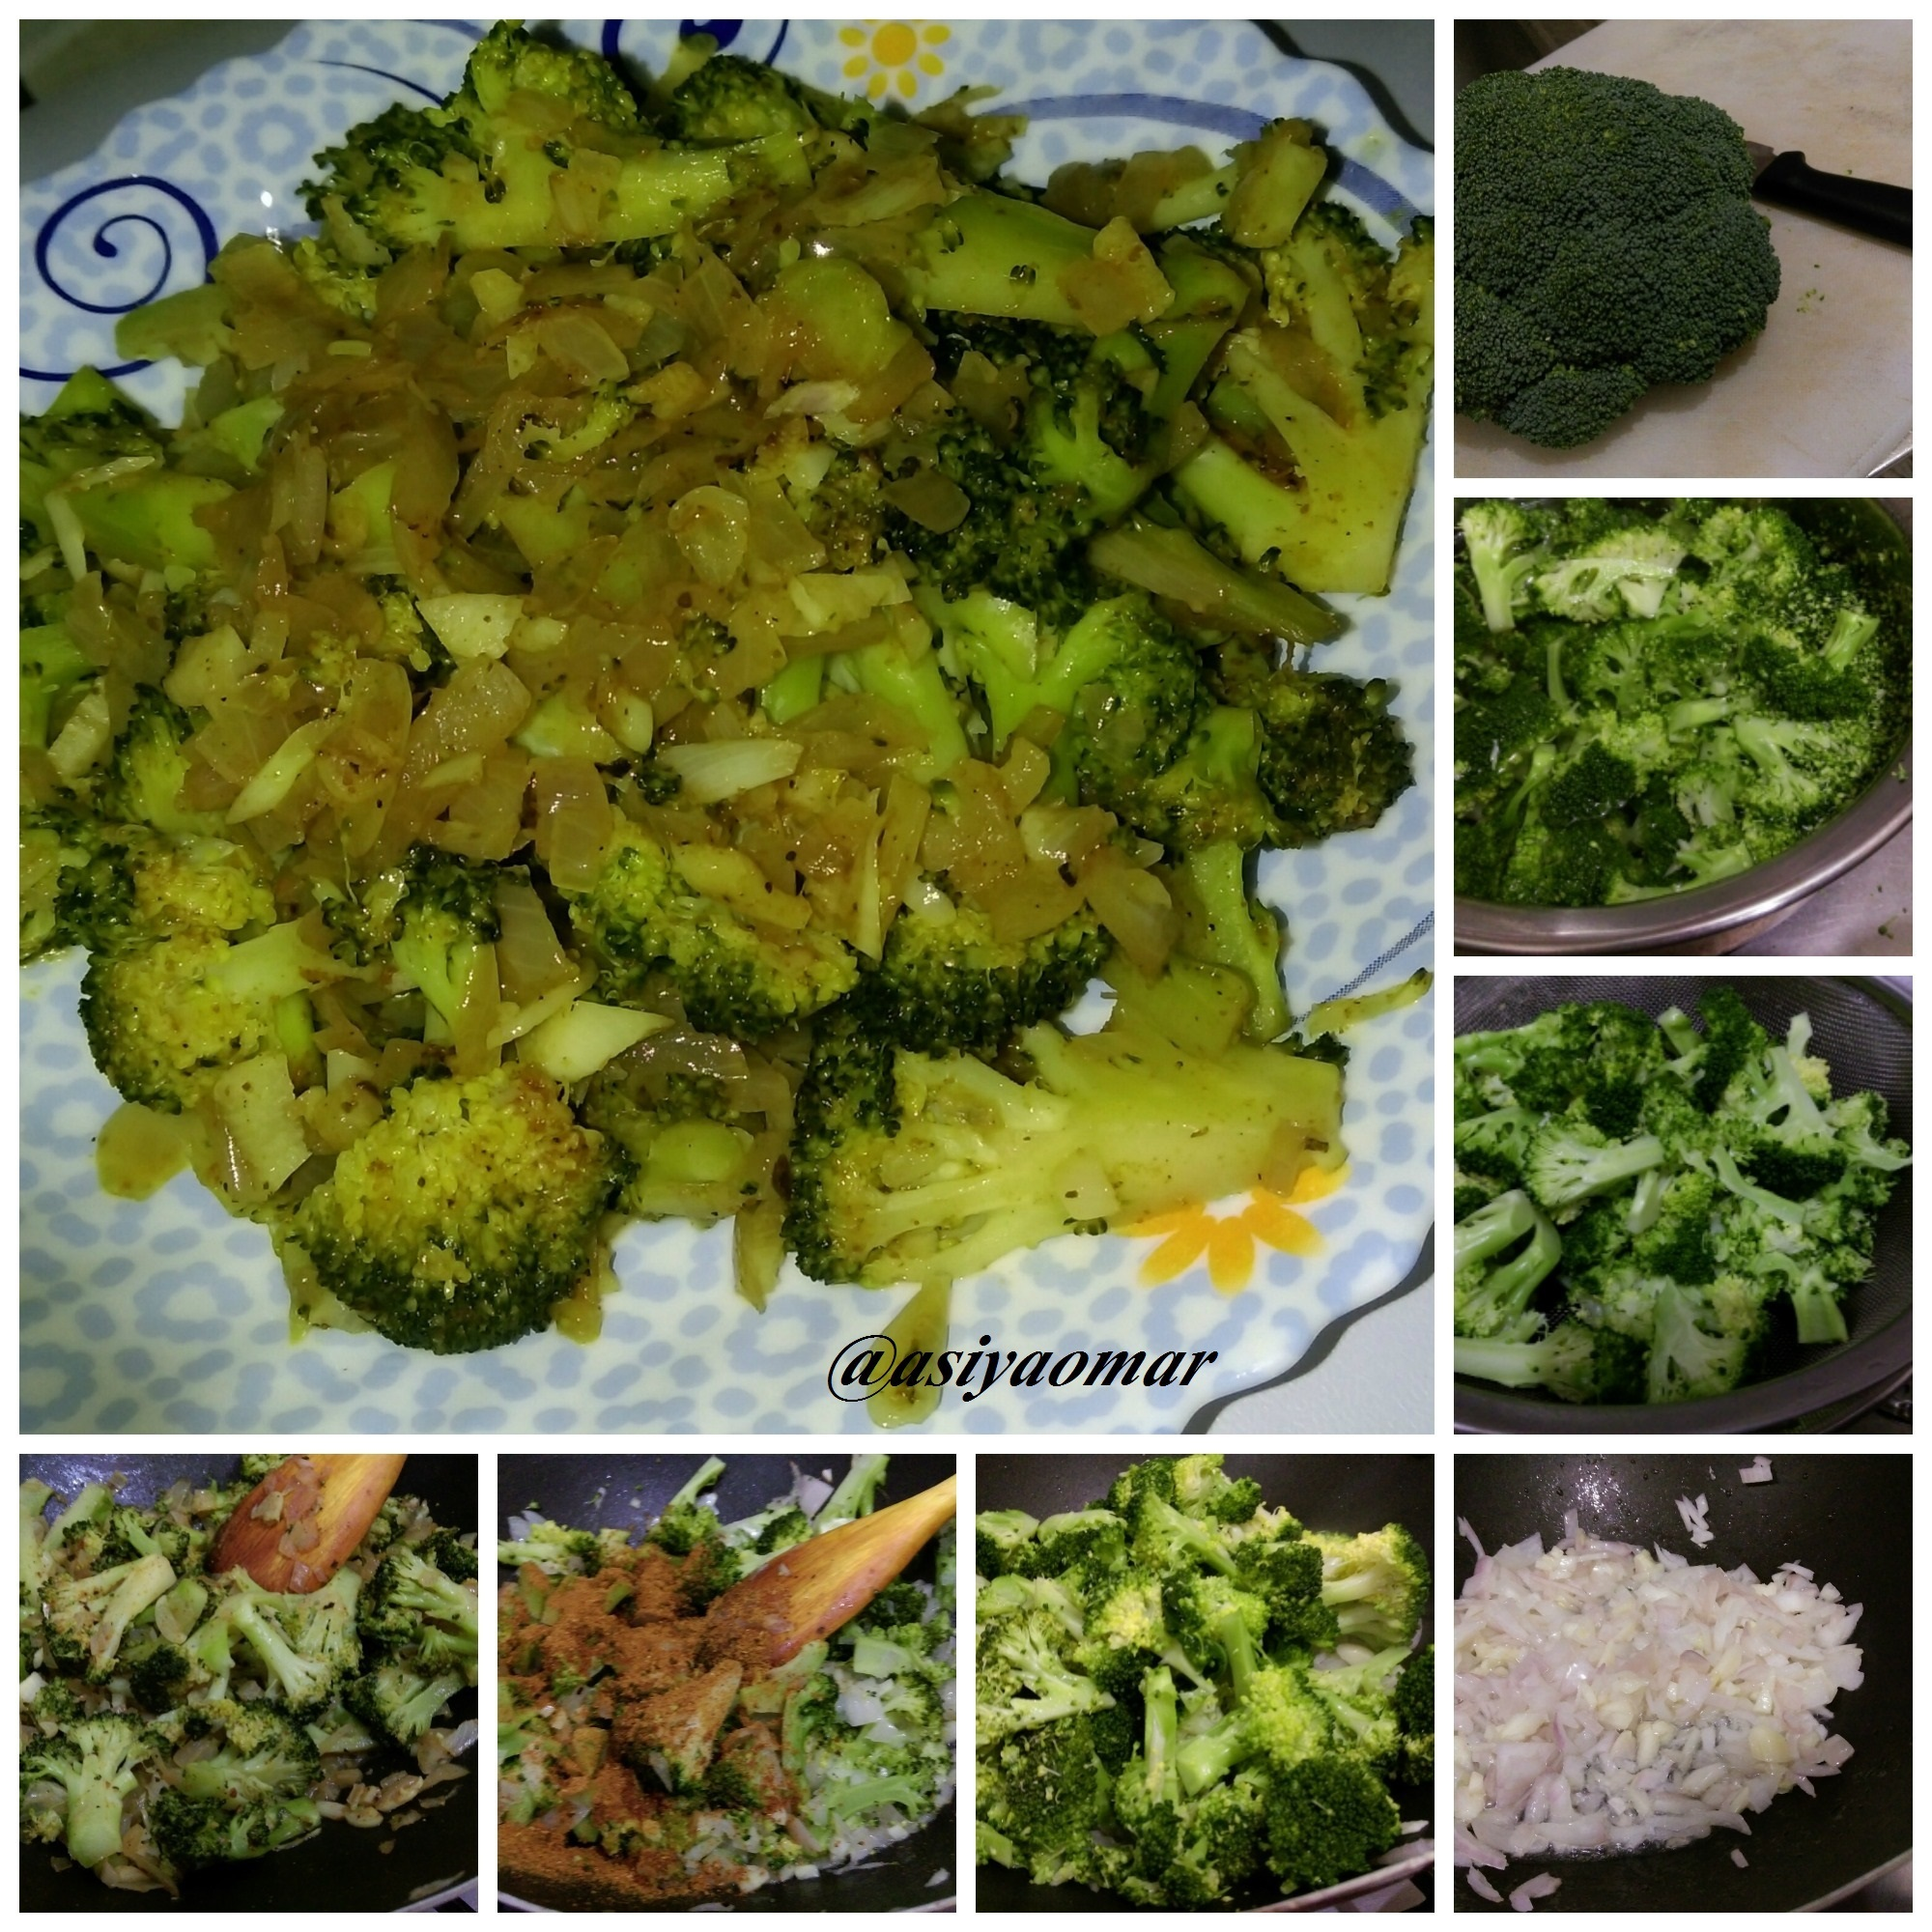 Broccoli stir fry (without coconut)